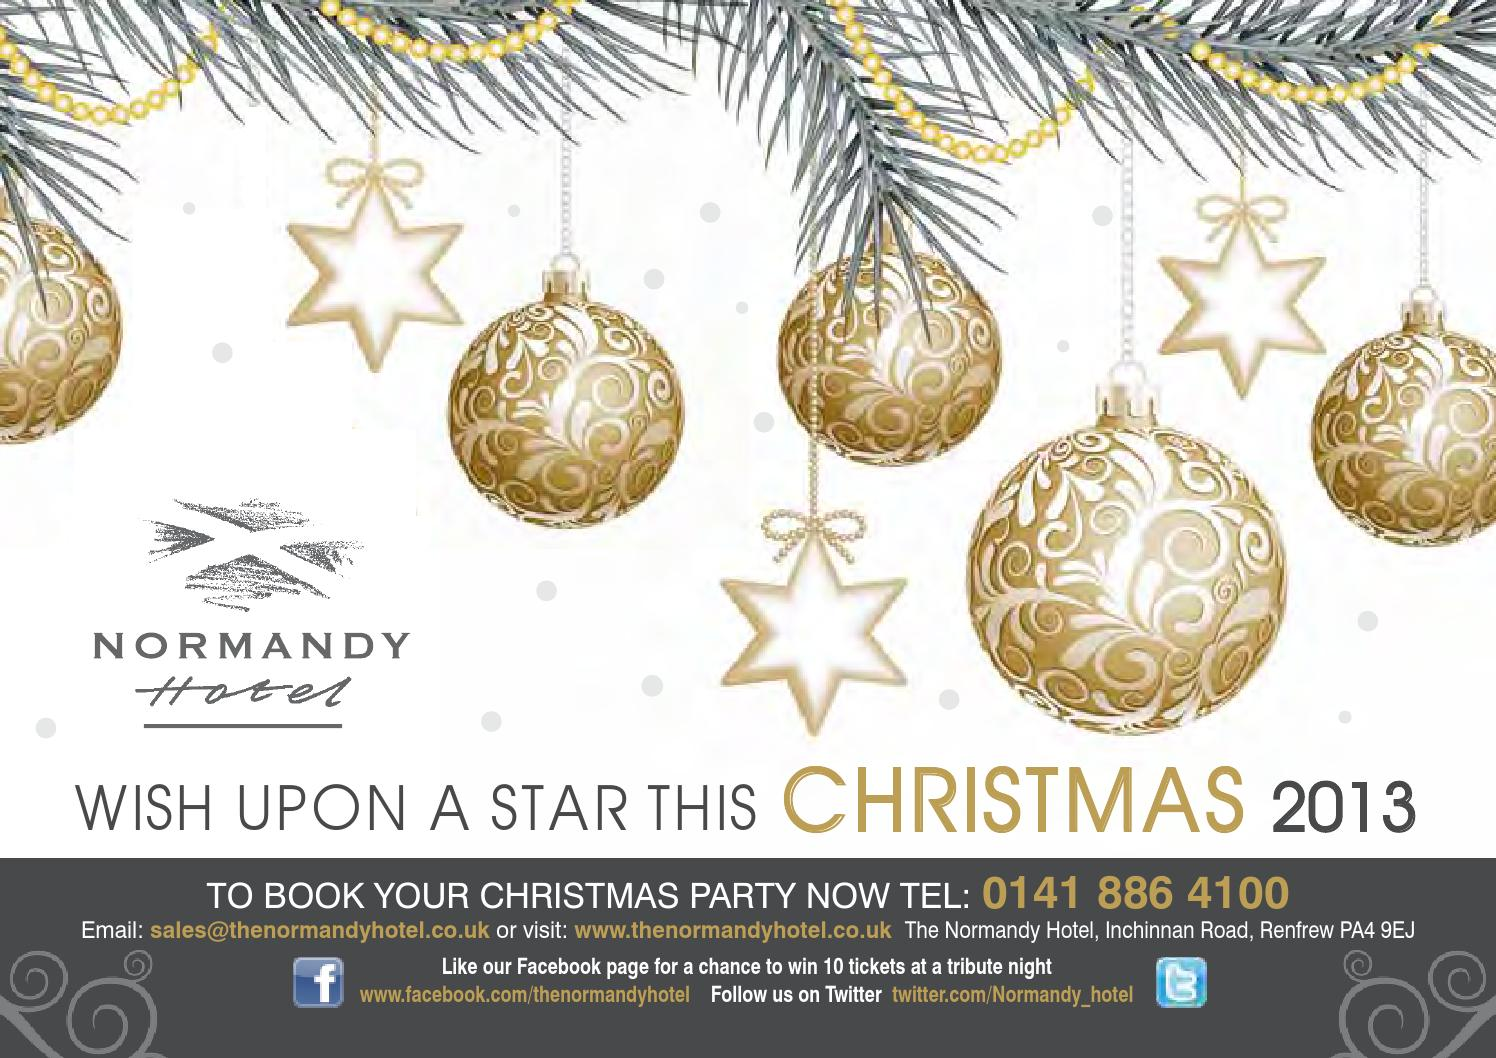 Normandy xmas 2013 brochure by BDL Hotels - issuu